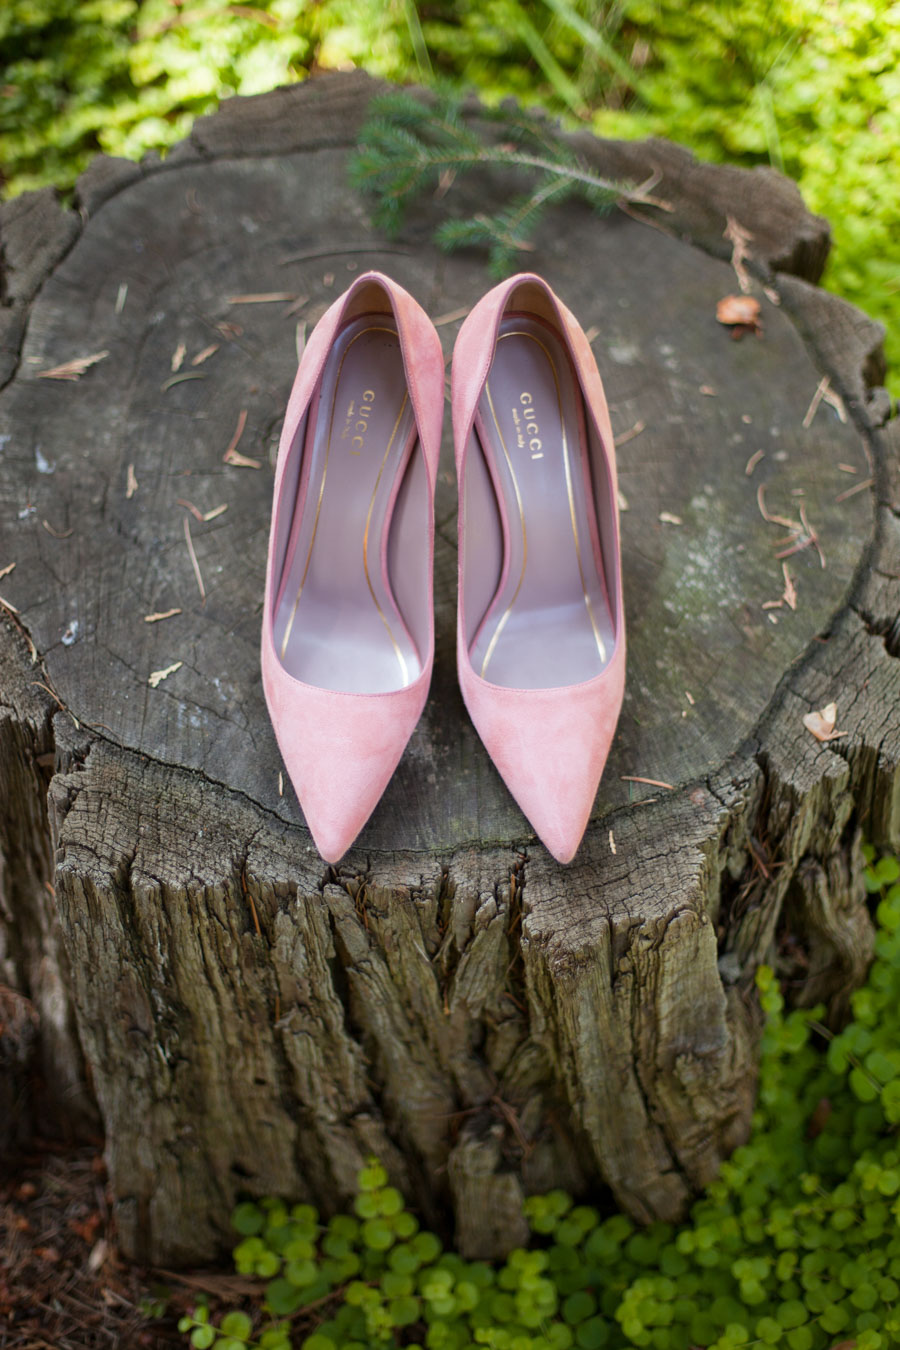 My Wedding Dress Story - Designing My Own Wedding Dress - Pink Suede Gucci Heels - Wedding Shoes